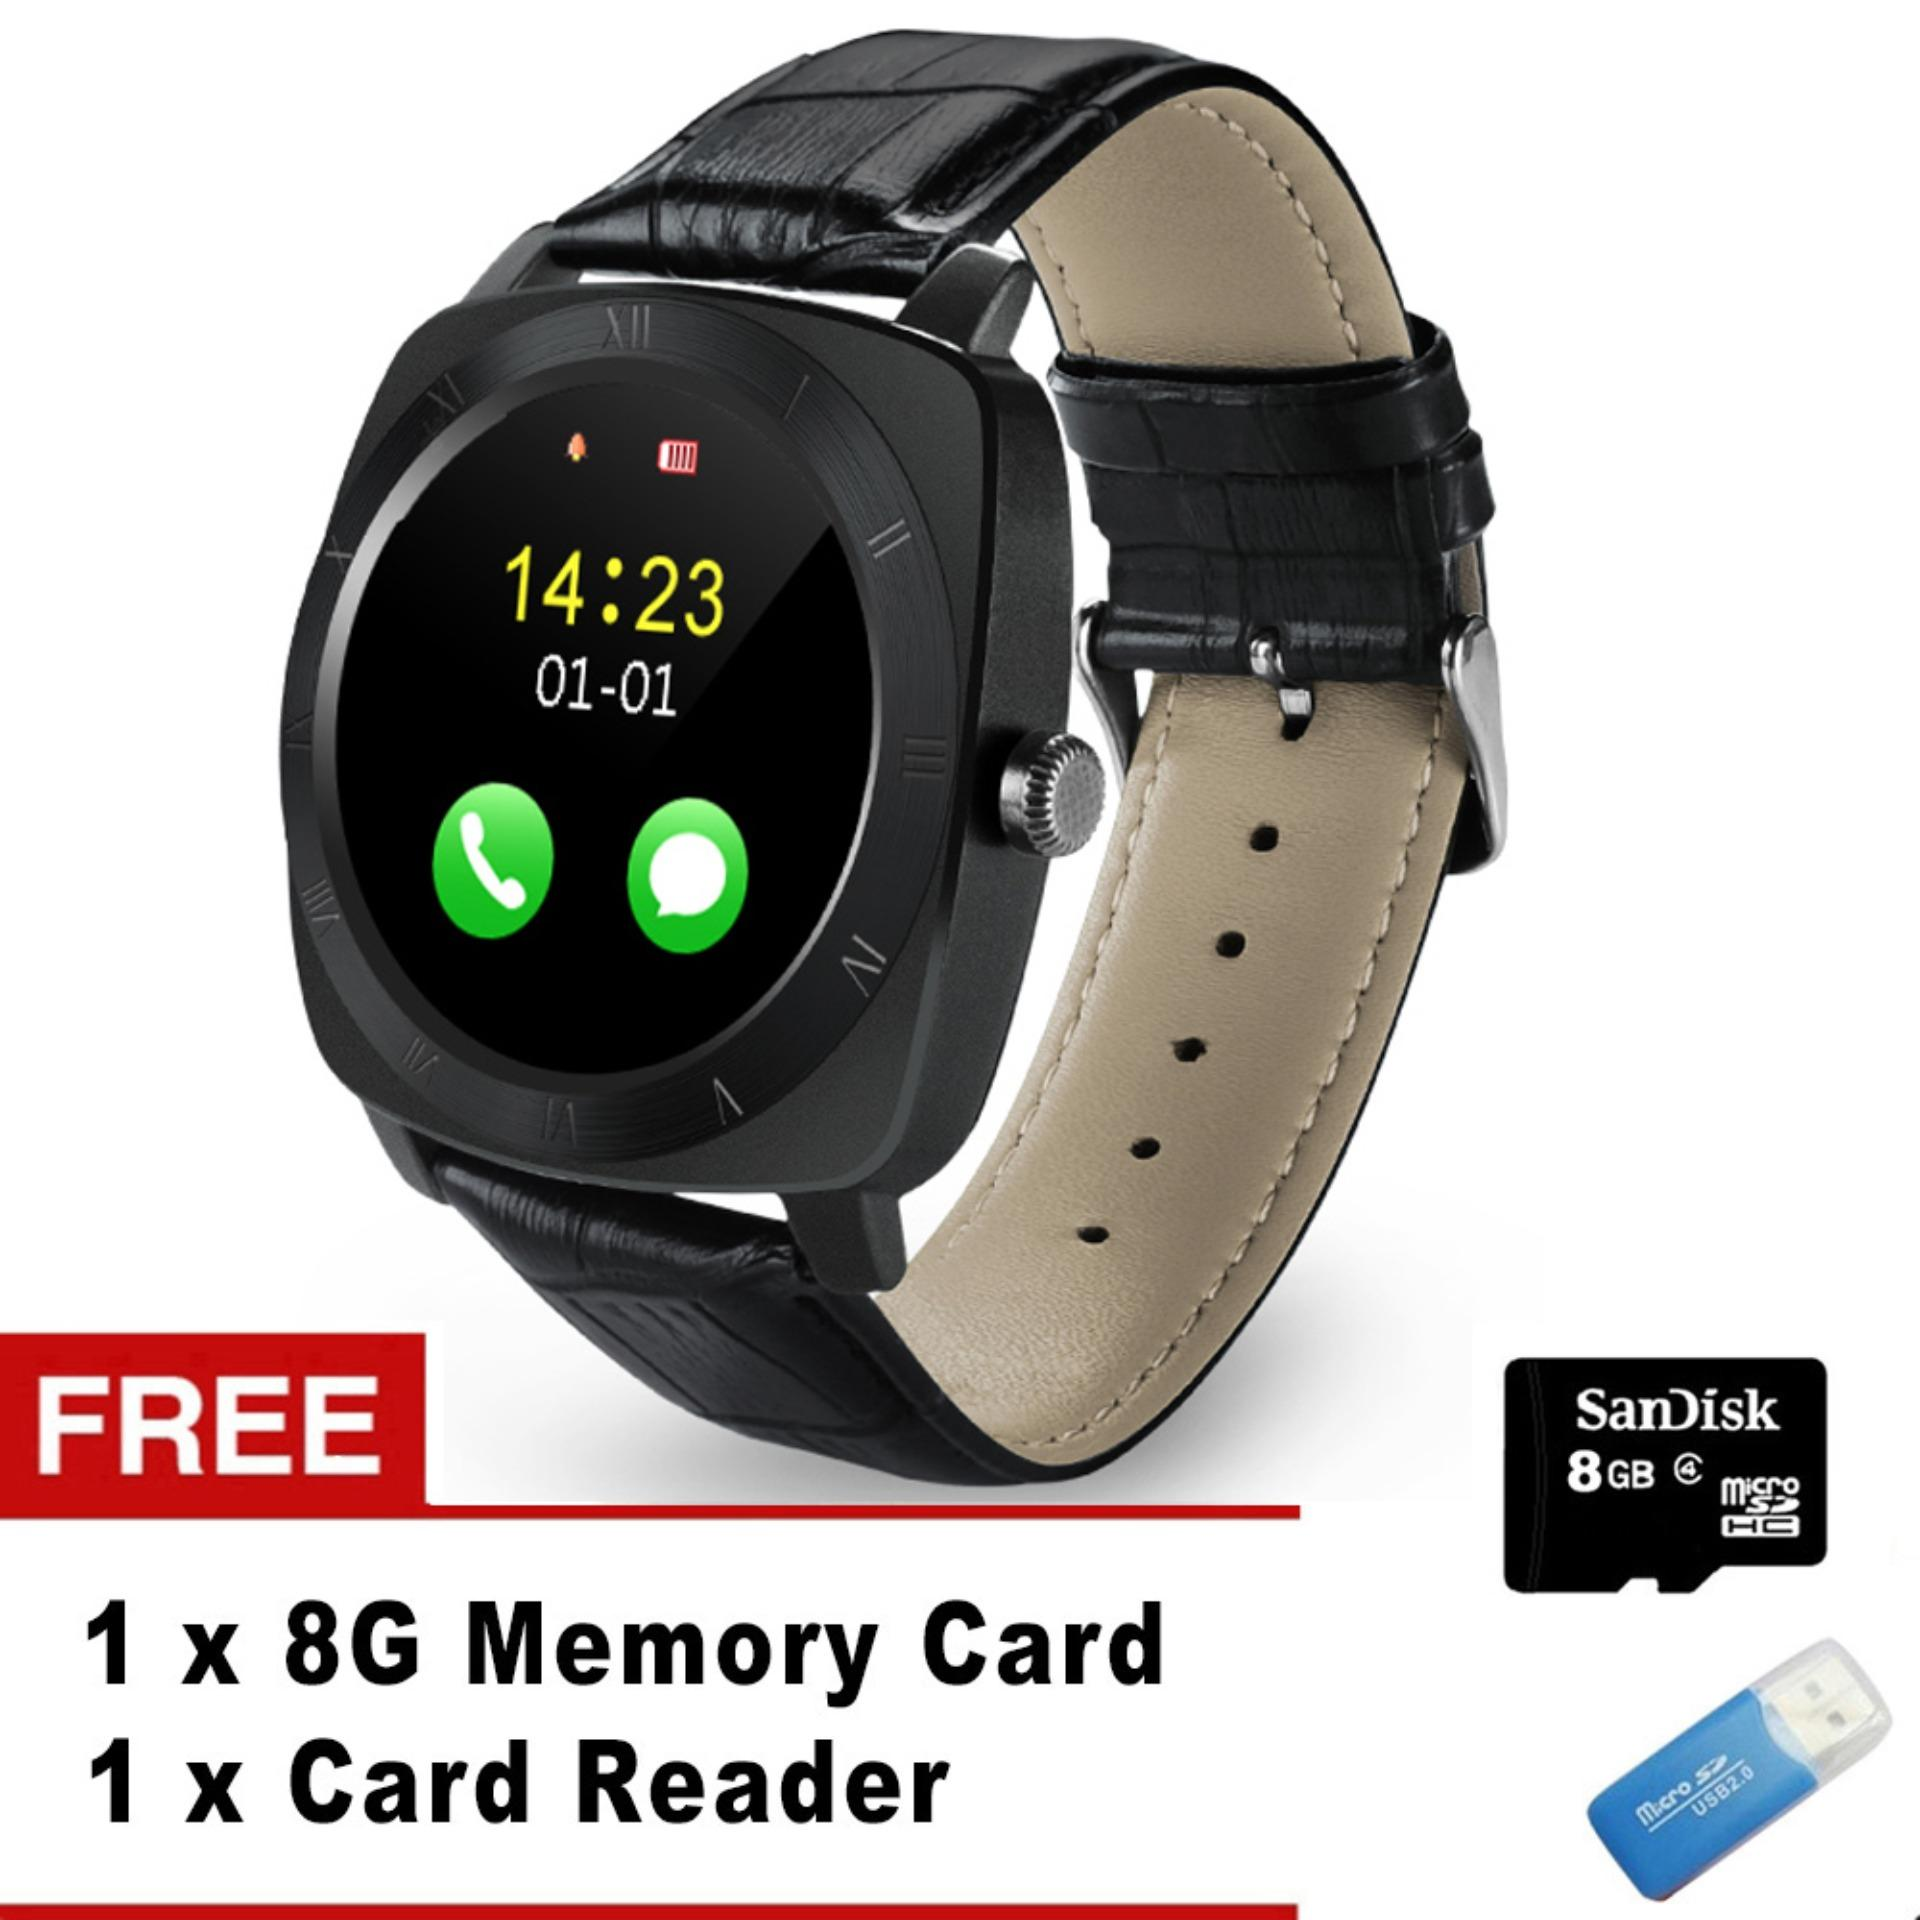 ... Smart Watch X3 Smartwatch Pedometer fitness Clock Camera SIM TFcard Mp3 player Relogio masculino for android ...